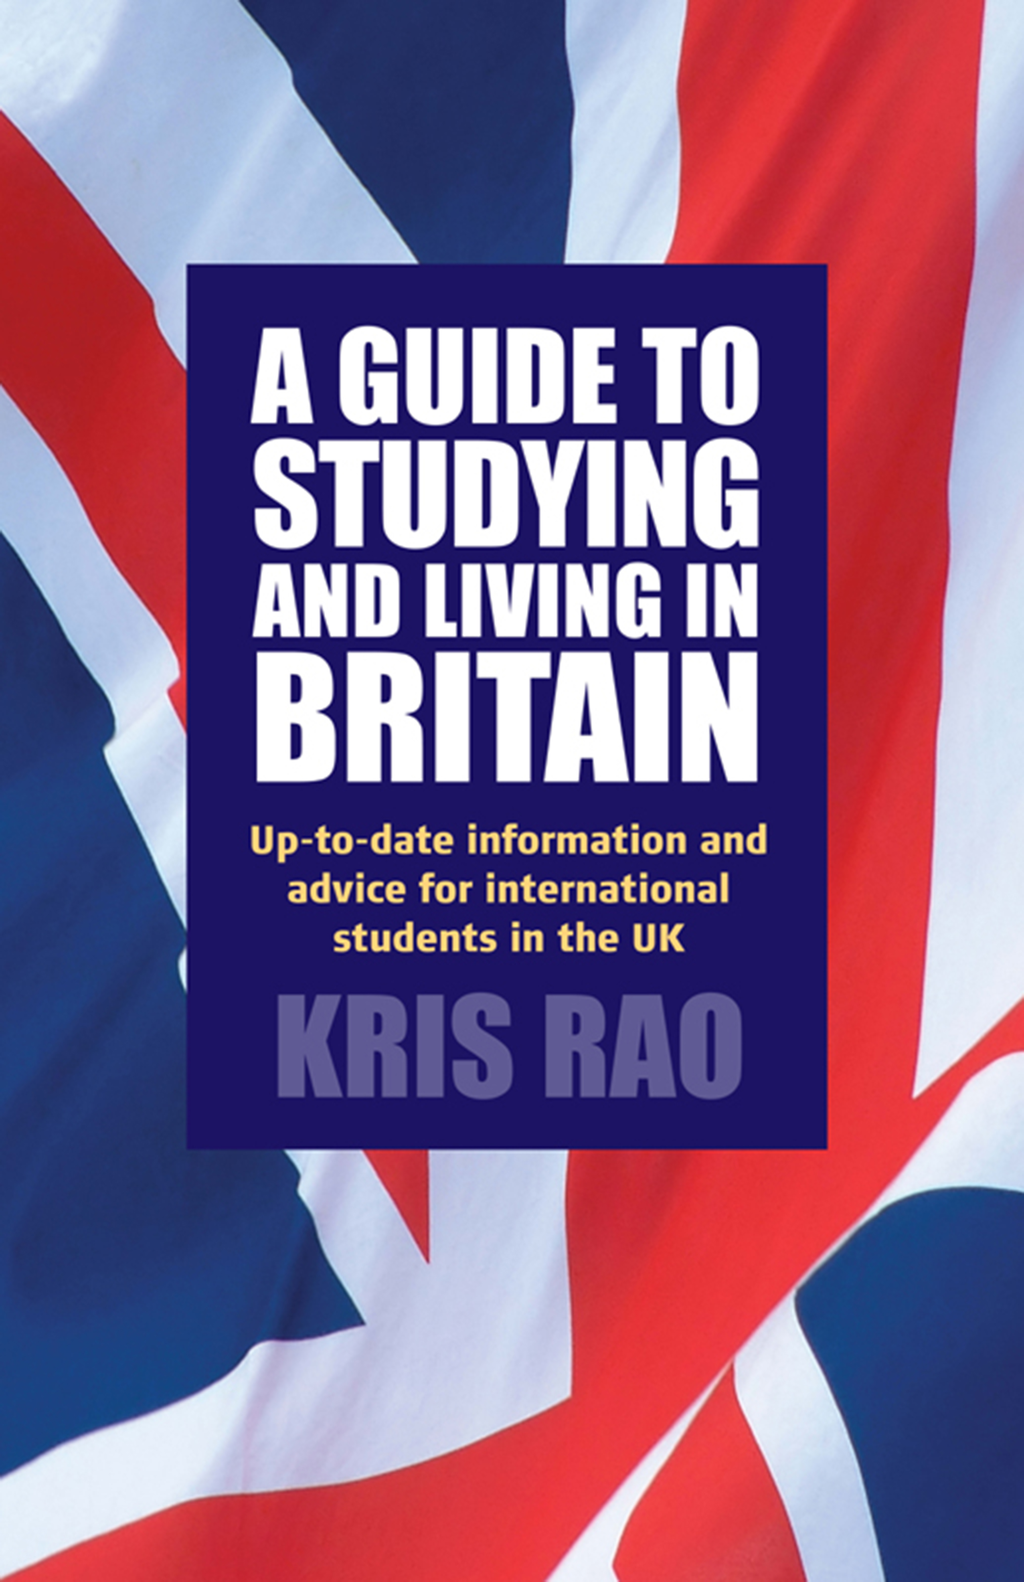 A Guide to Studying and Living in Britain Up-to-date Information and Advice for International Students in the UK